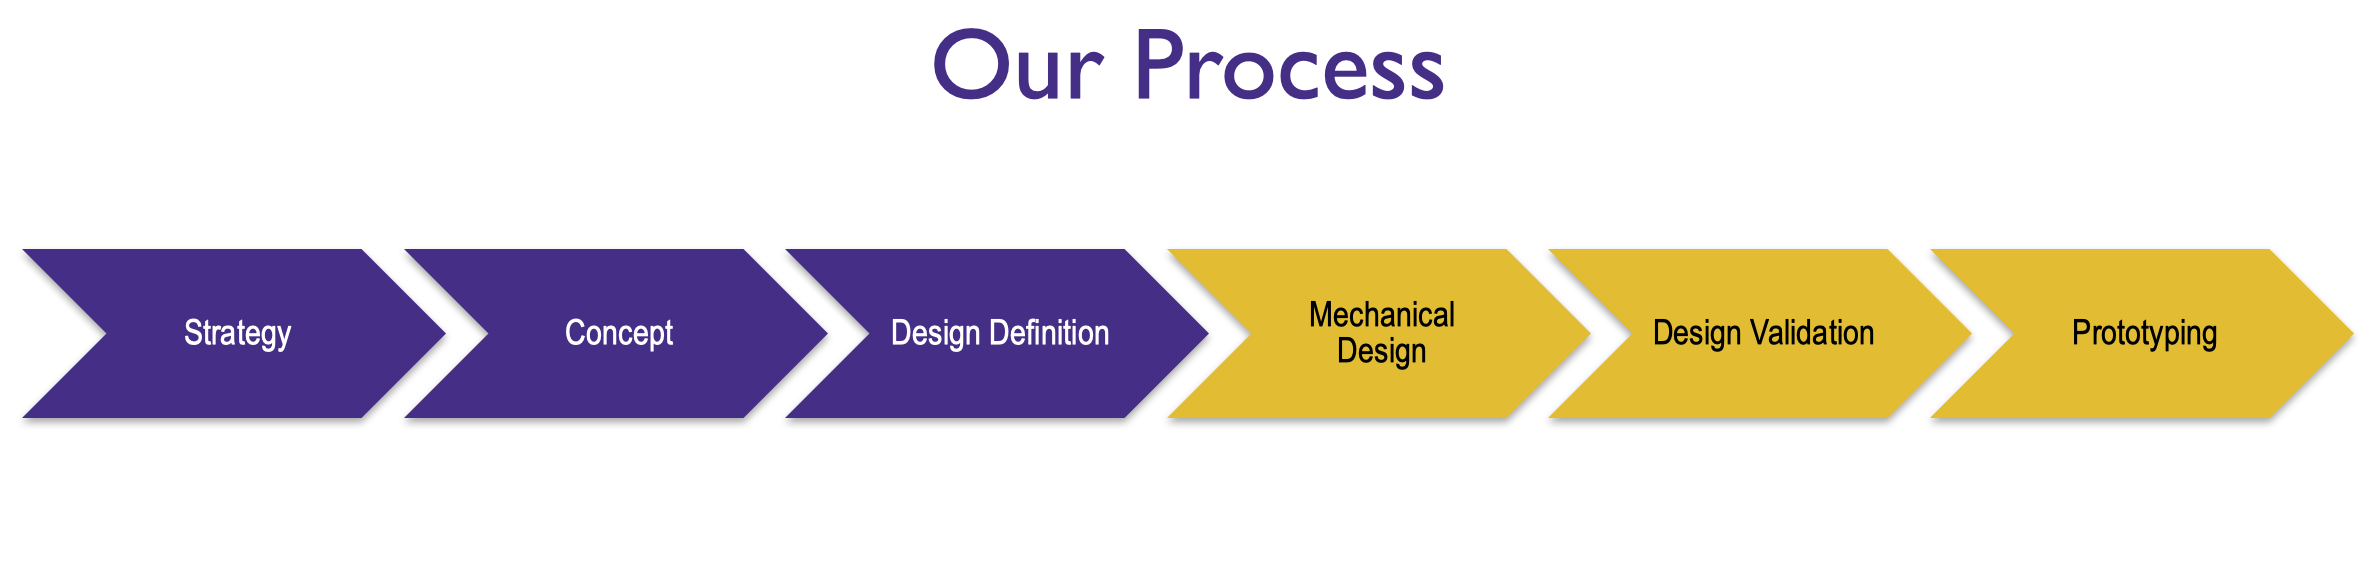 At Fusion Design, we do industrial design and mechanical engineering and our process always starts with the needs and requirements of the user. -